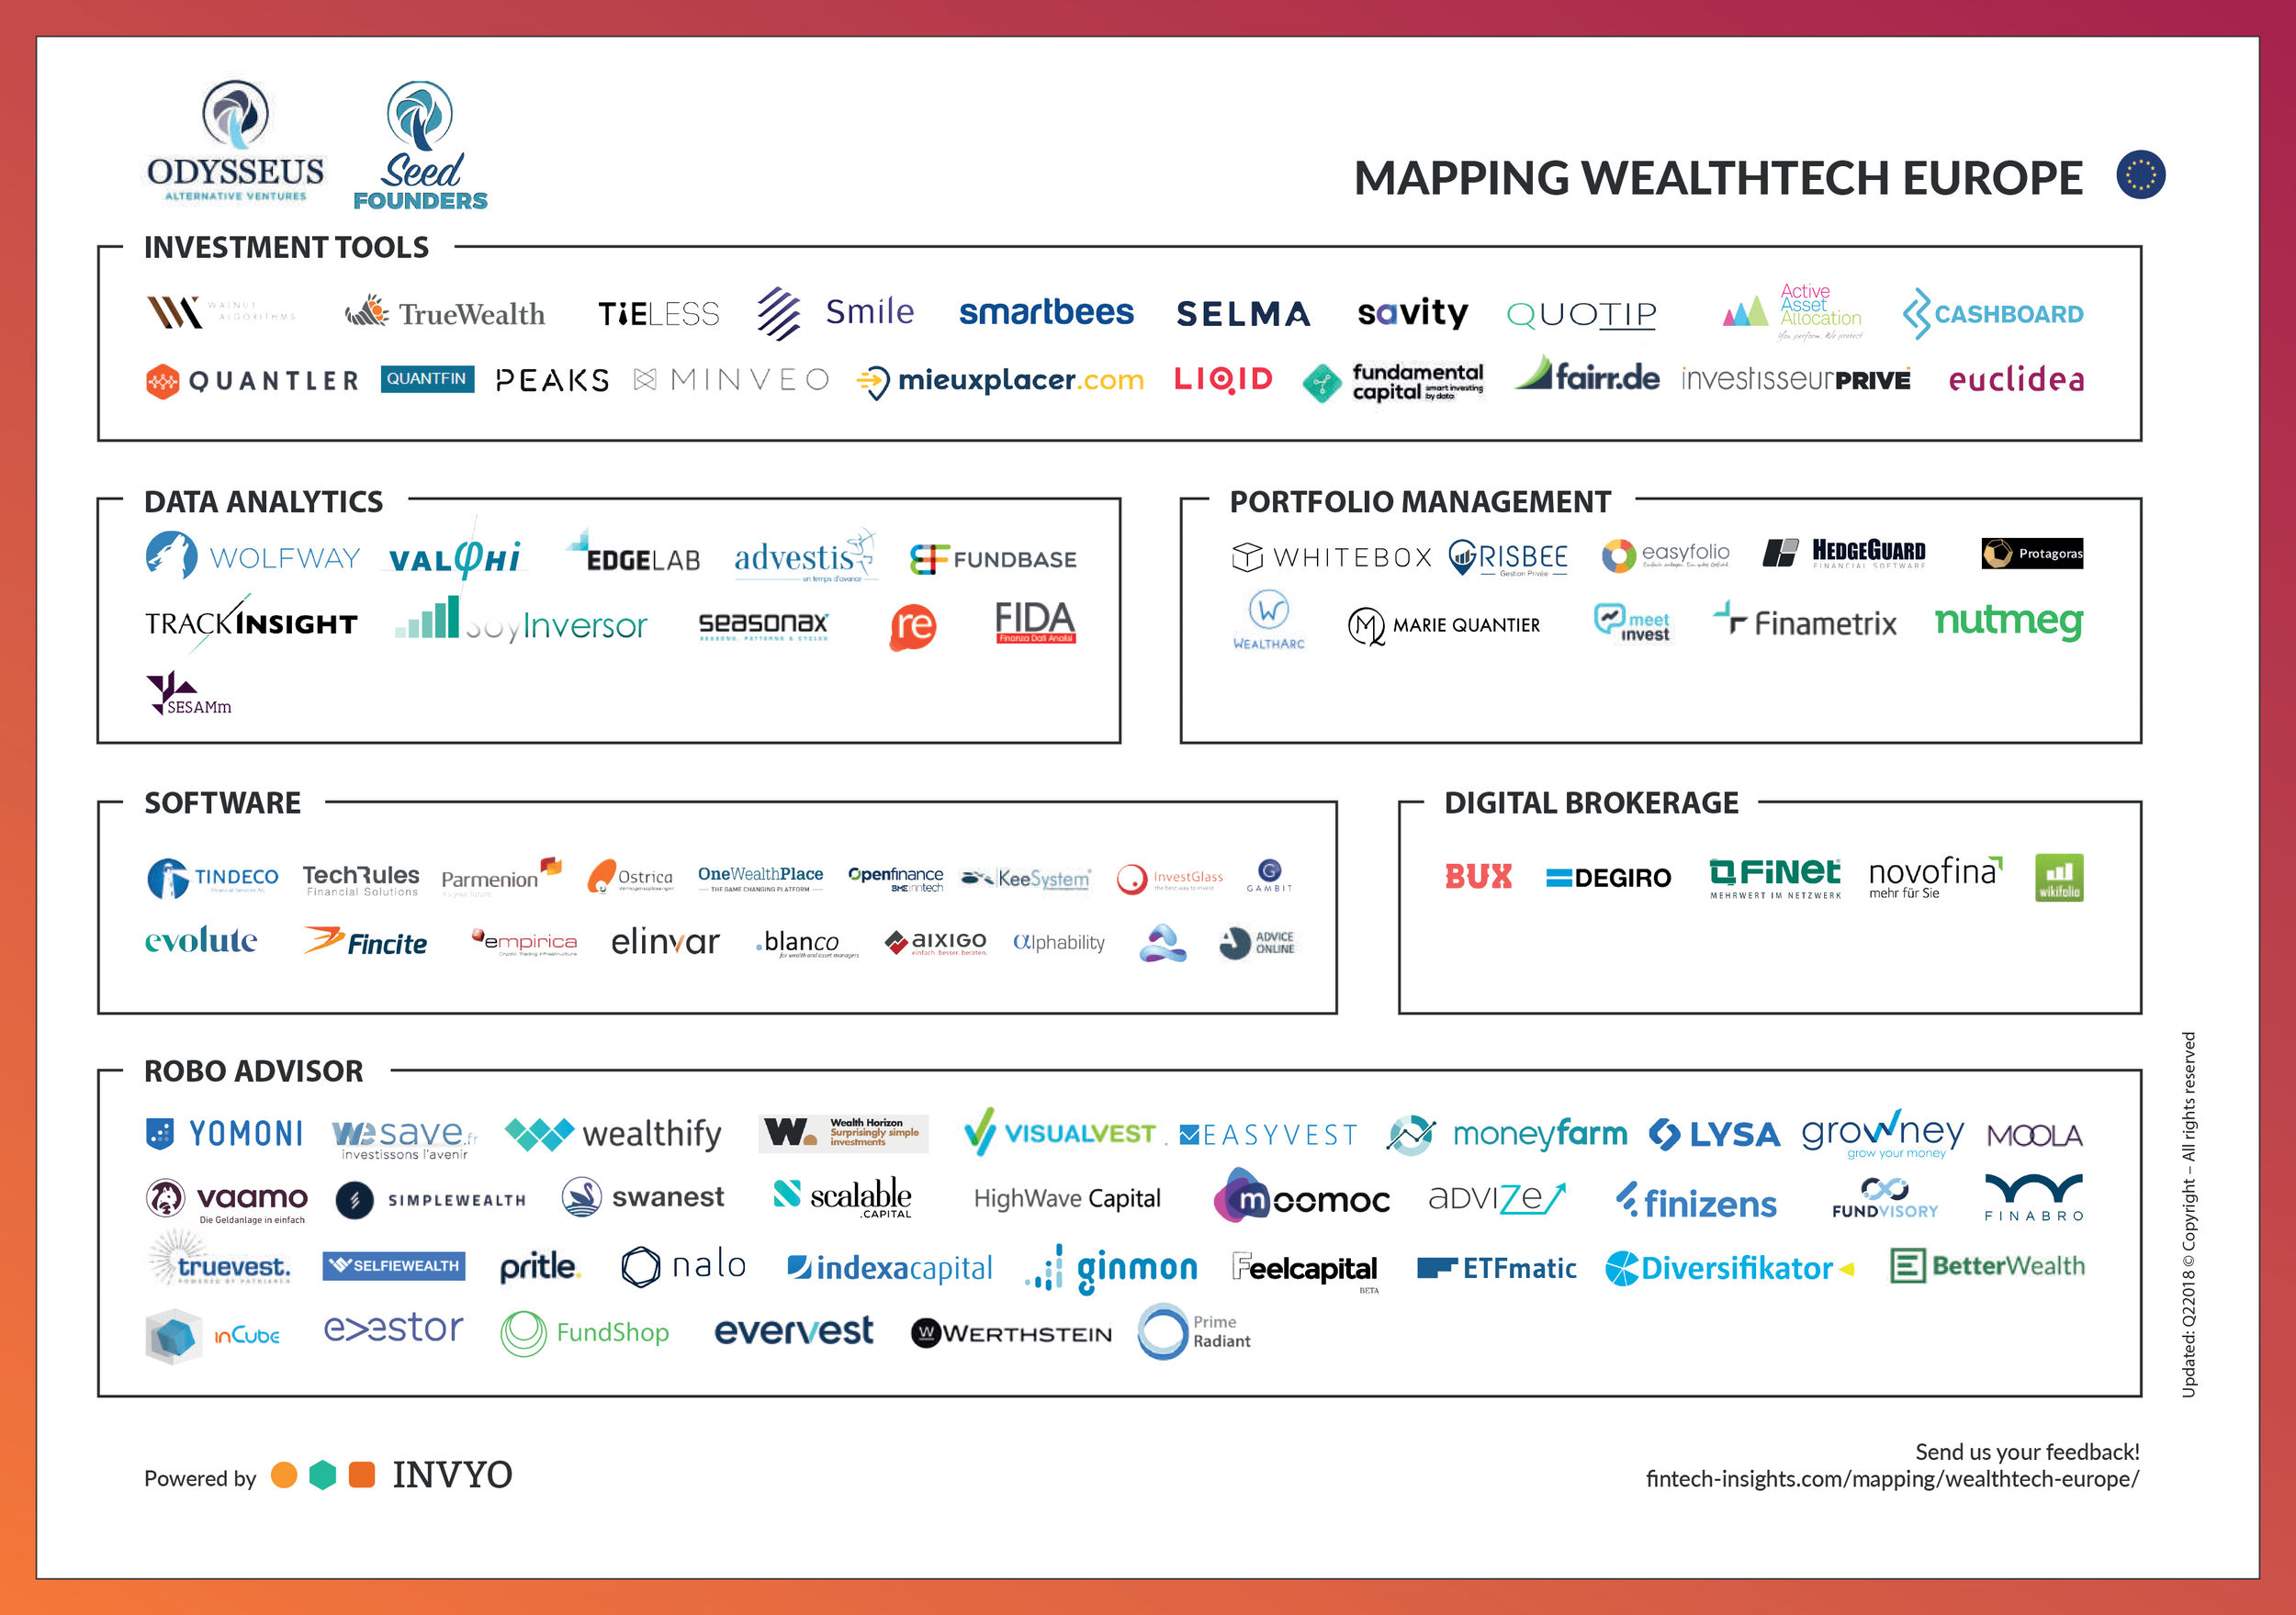 preview_mapping_wealthtech_europe_2018